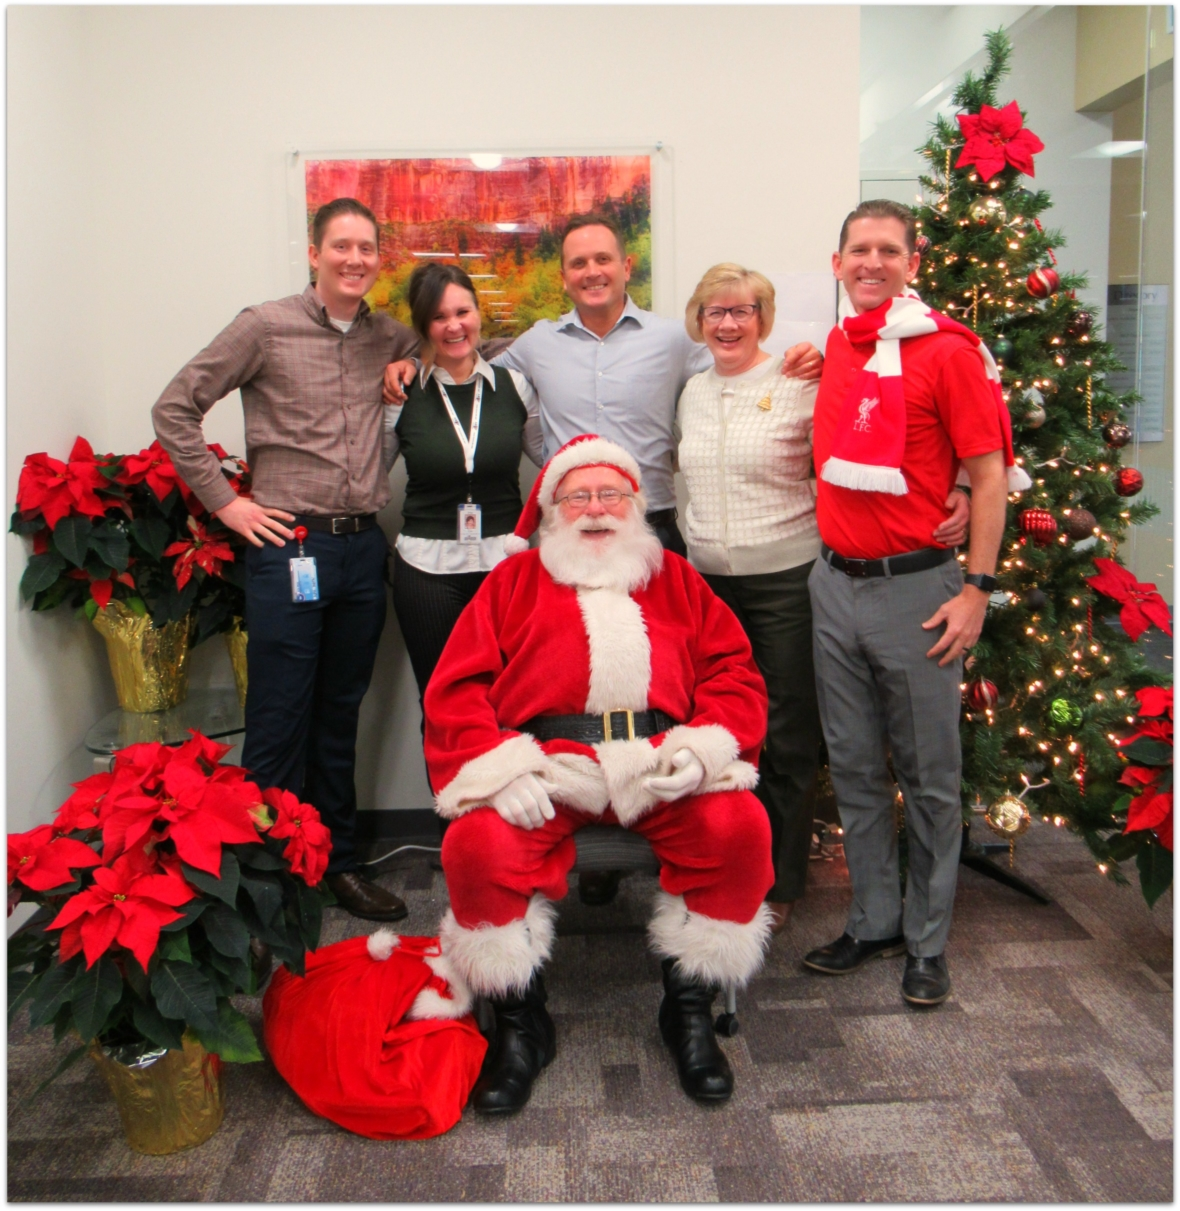 Every year Santa makes a special visit to ARUP to help celebrate the holidays with our employees and their families.